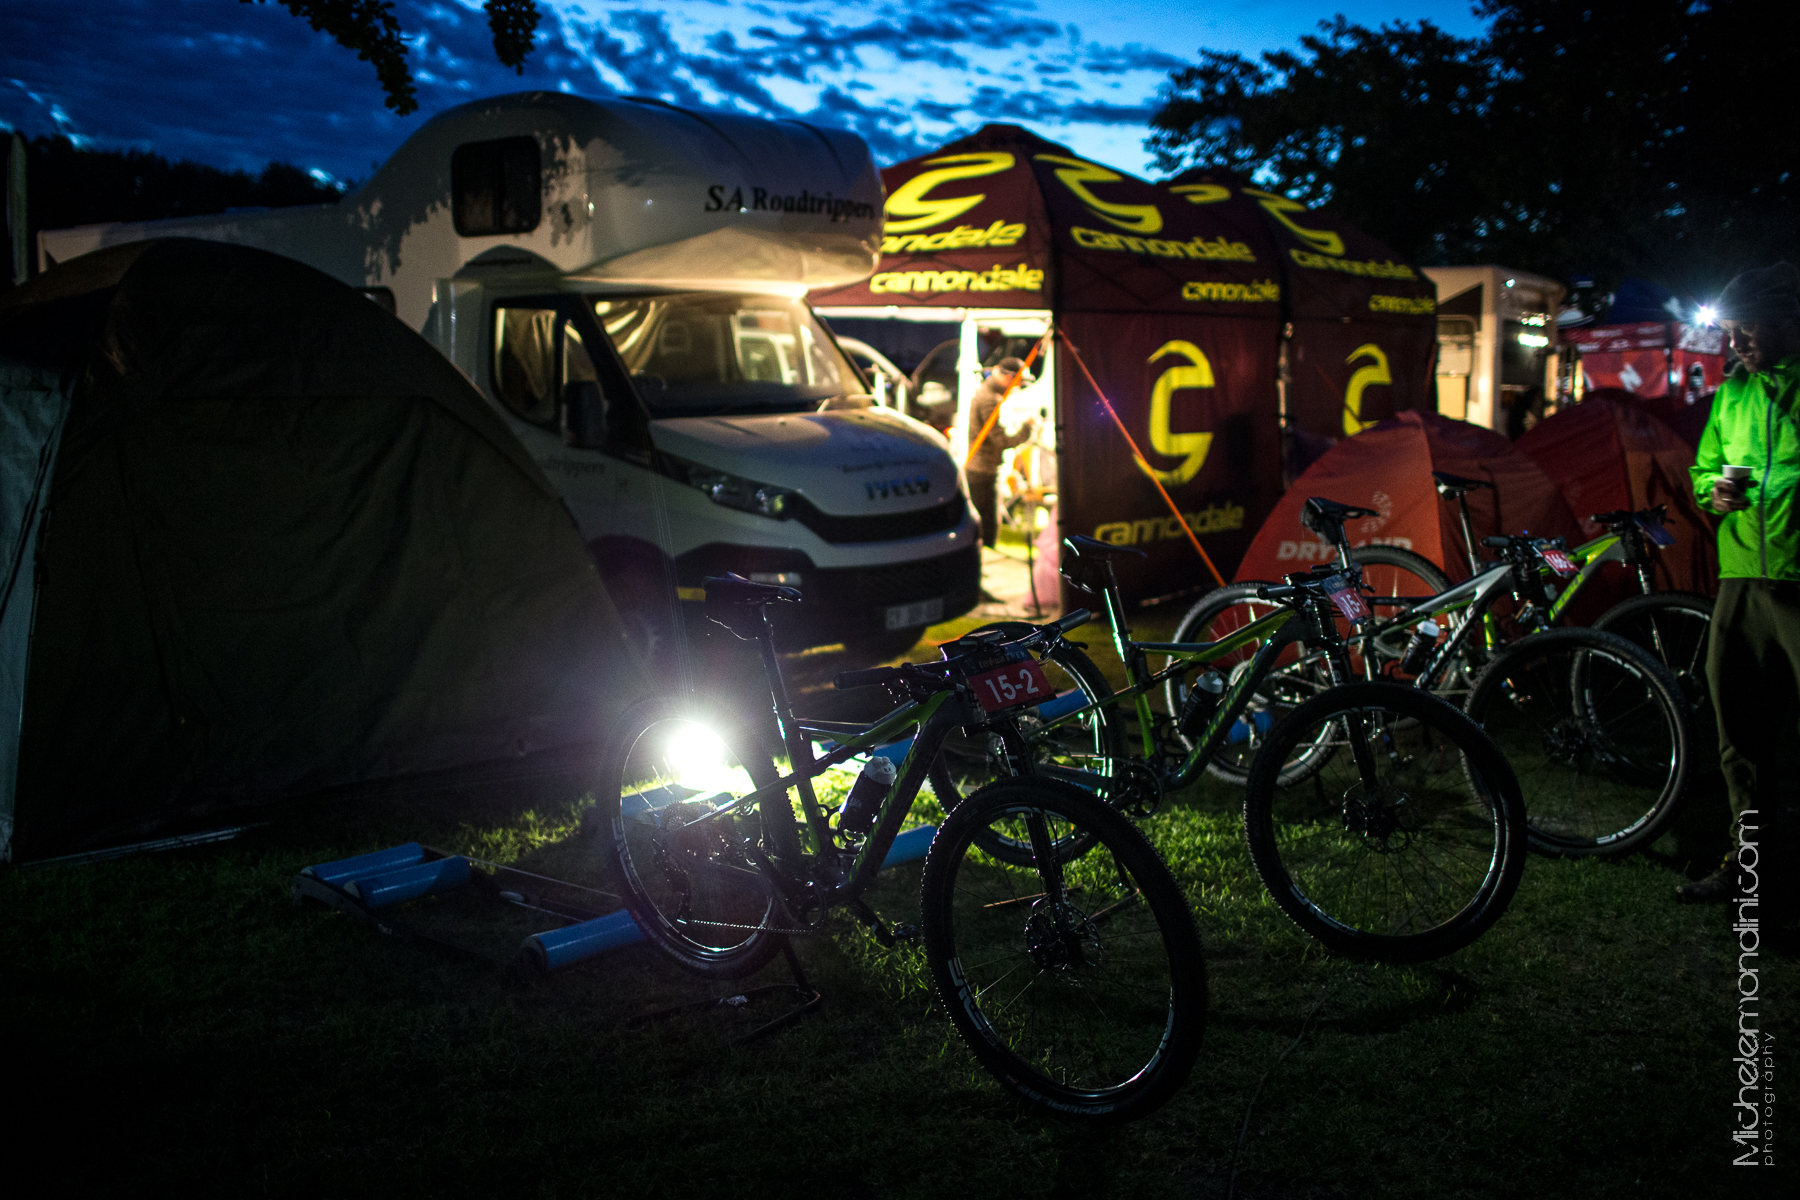 Early wake up for CFR during stage race like Tankwa Trek - Prince Alfred Hamlet - South Africa - Ph: Michele Mondini